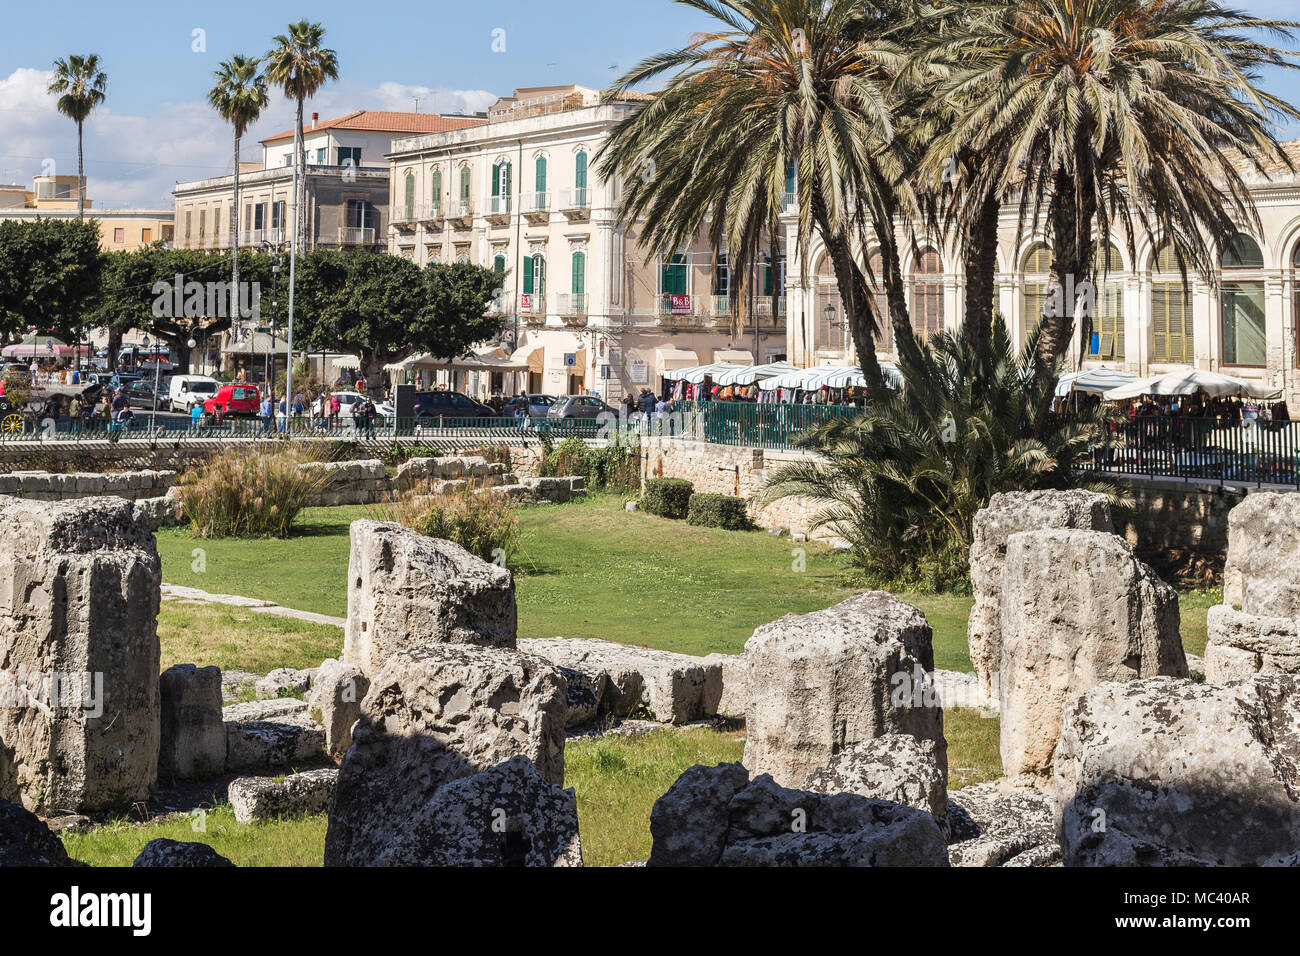 Columns of the Temple of Apollo in Ortigia, Siracusa, Sicily. - Stock Image